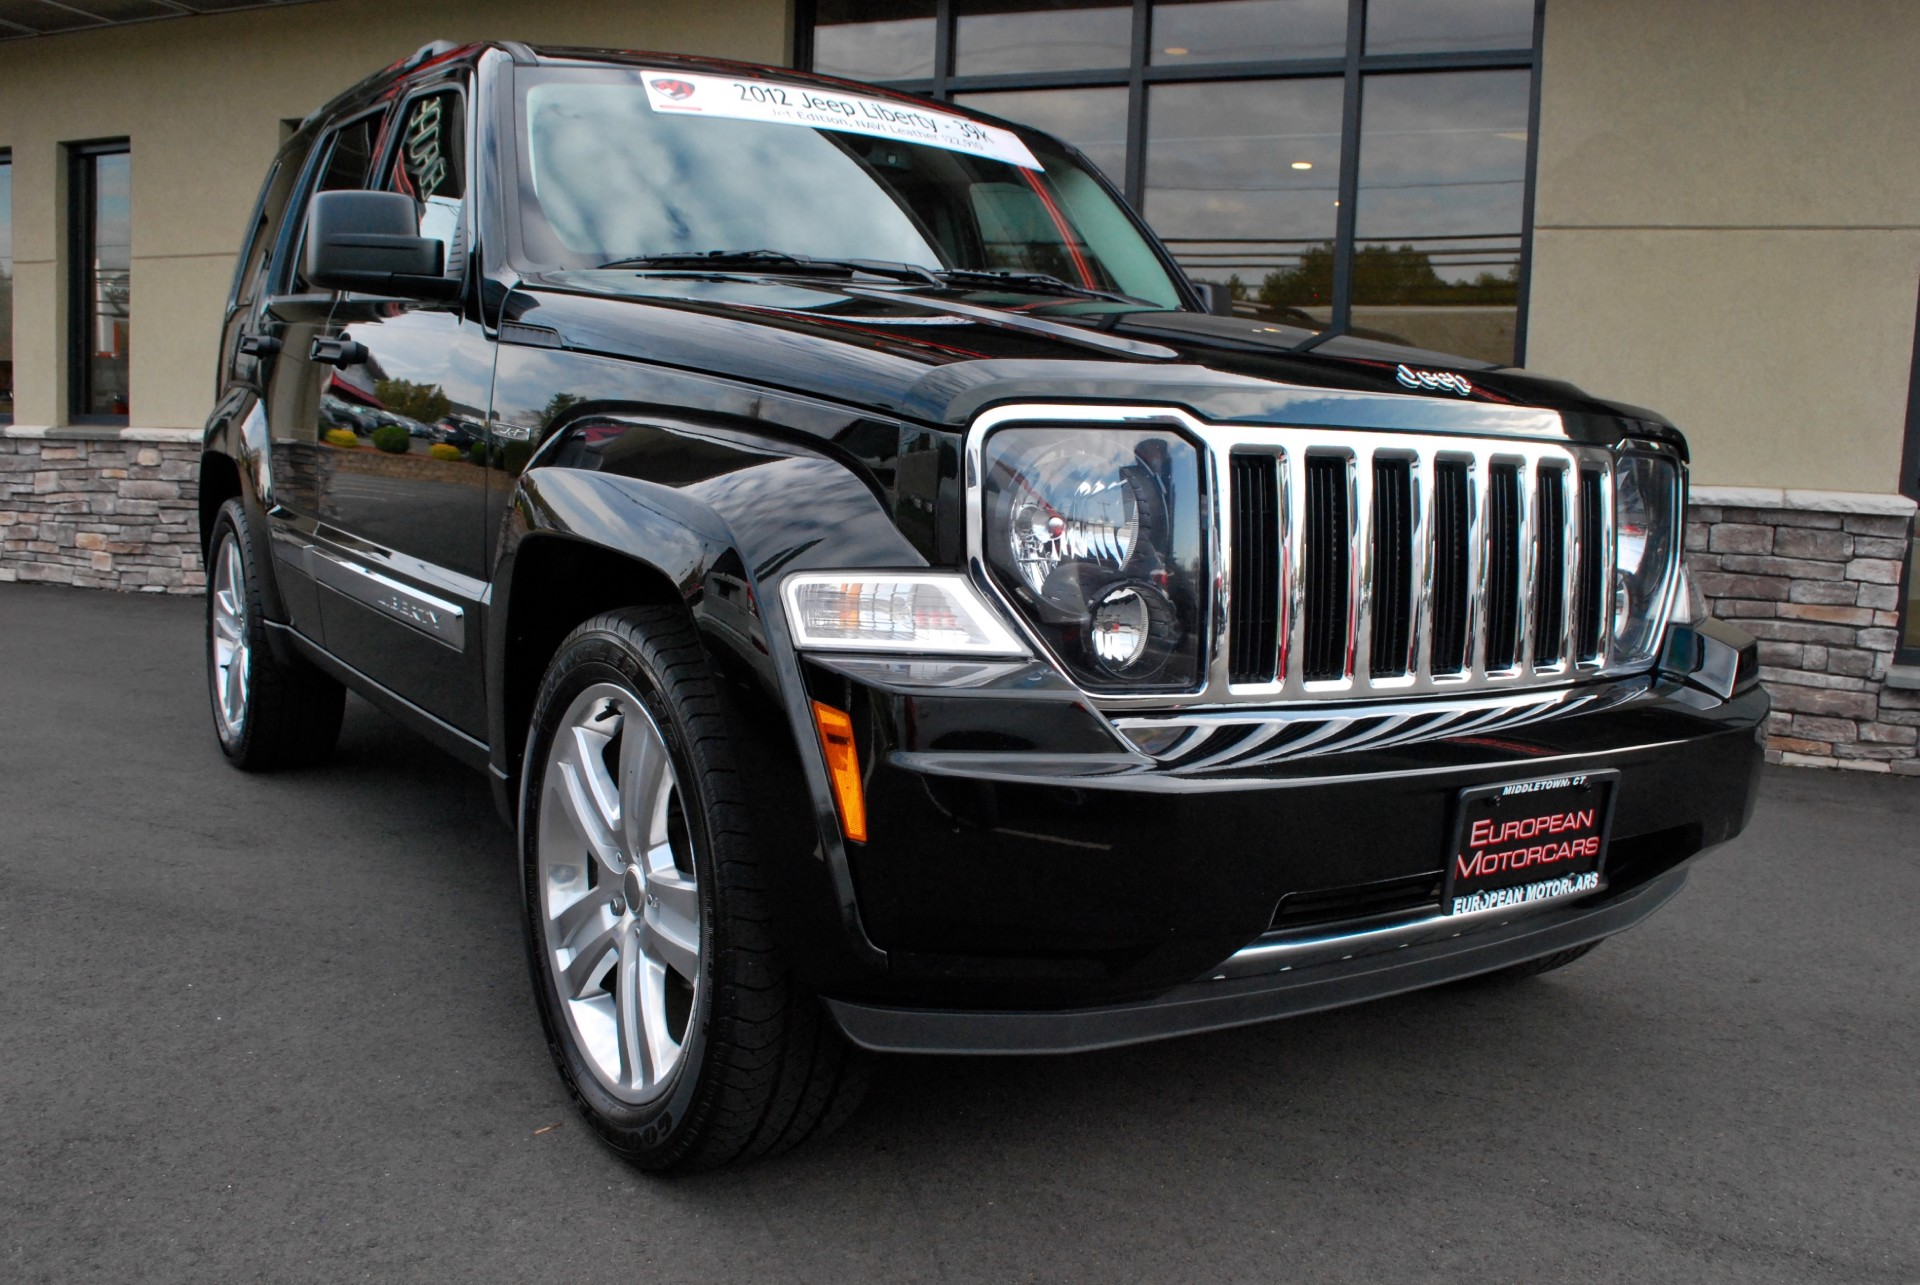 2012 jeep liberty jet edition for sale near middletown ct ct jeep dealer stock 200754. Black Bedroom Furniture Sets. Home Design Ideas